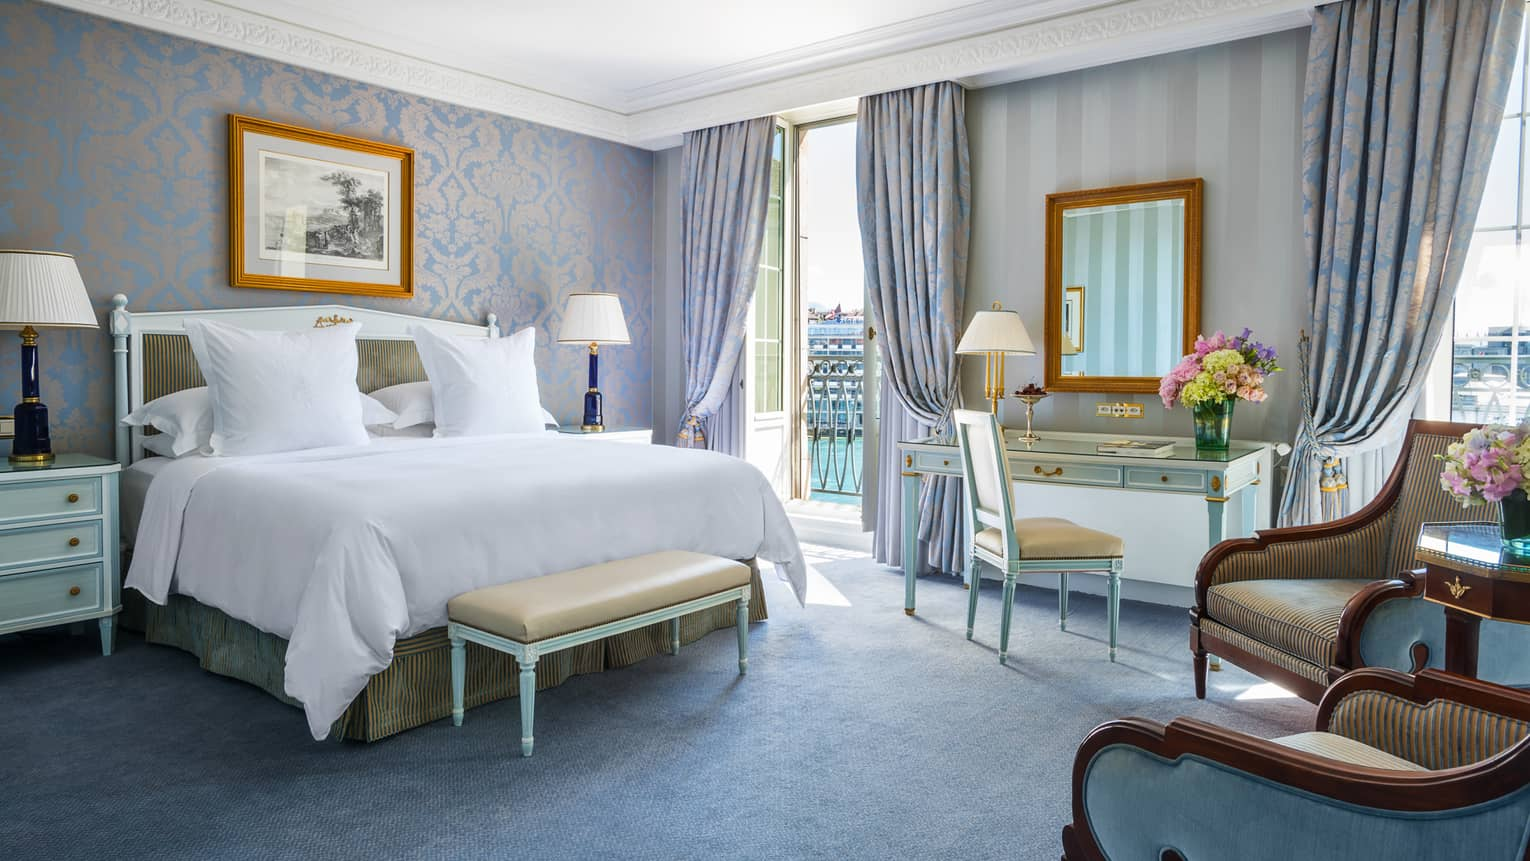 Deluxe Room bed with elegant blue-and-gold wallpaper and decor, floor-to-ceiling French doors opening to patio